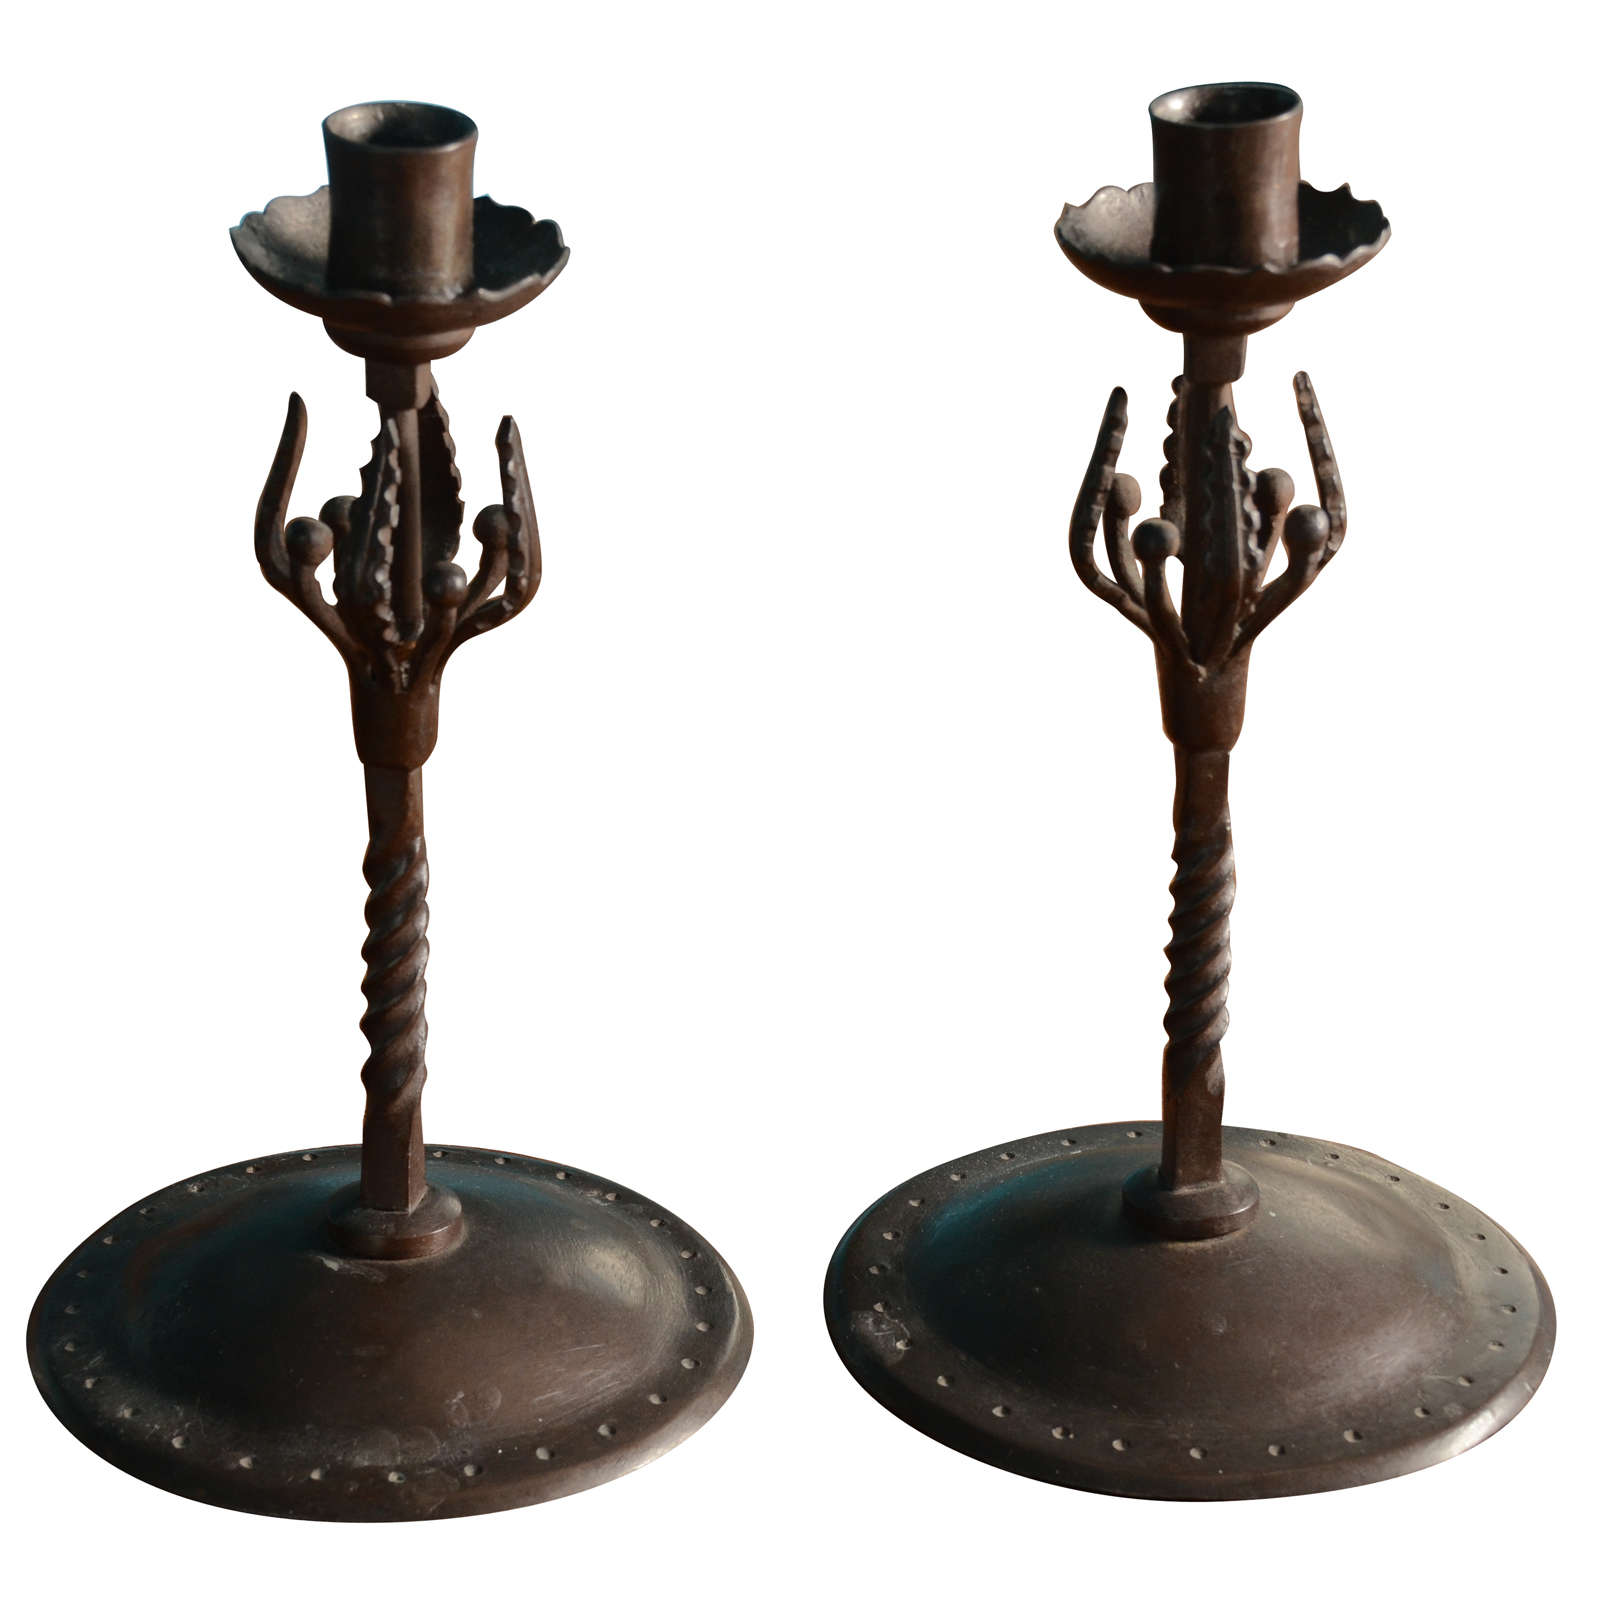 English arts and crafts metal candlesticks design edward for Metal arts and crafts